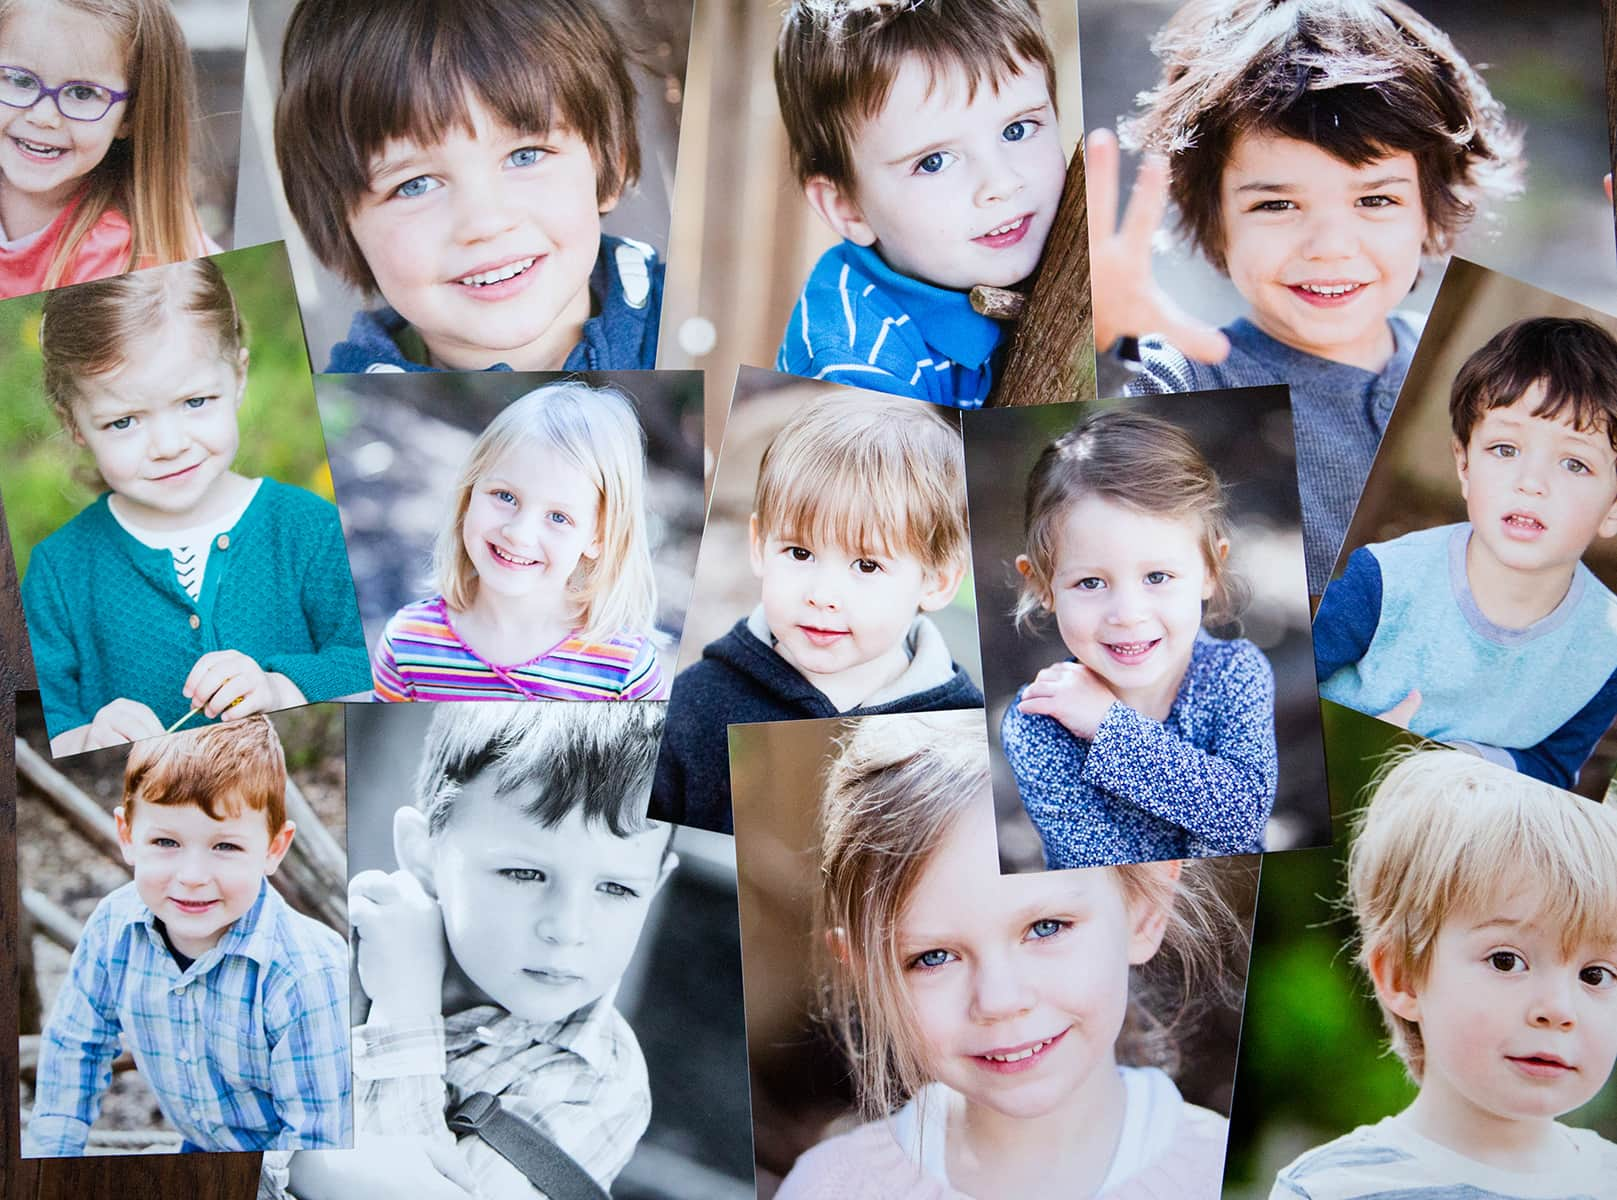 school pictures are printed on high-quality image paper to last for generations